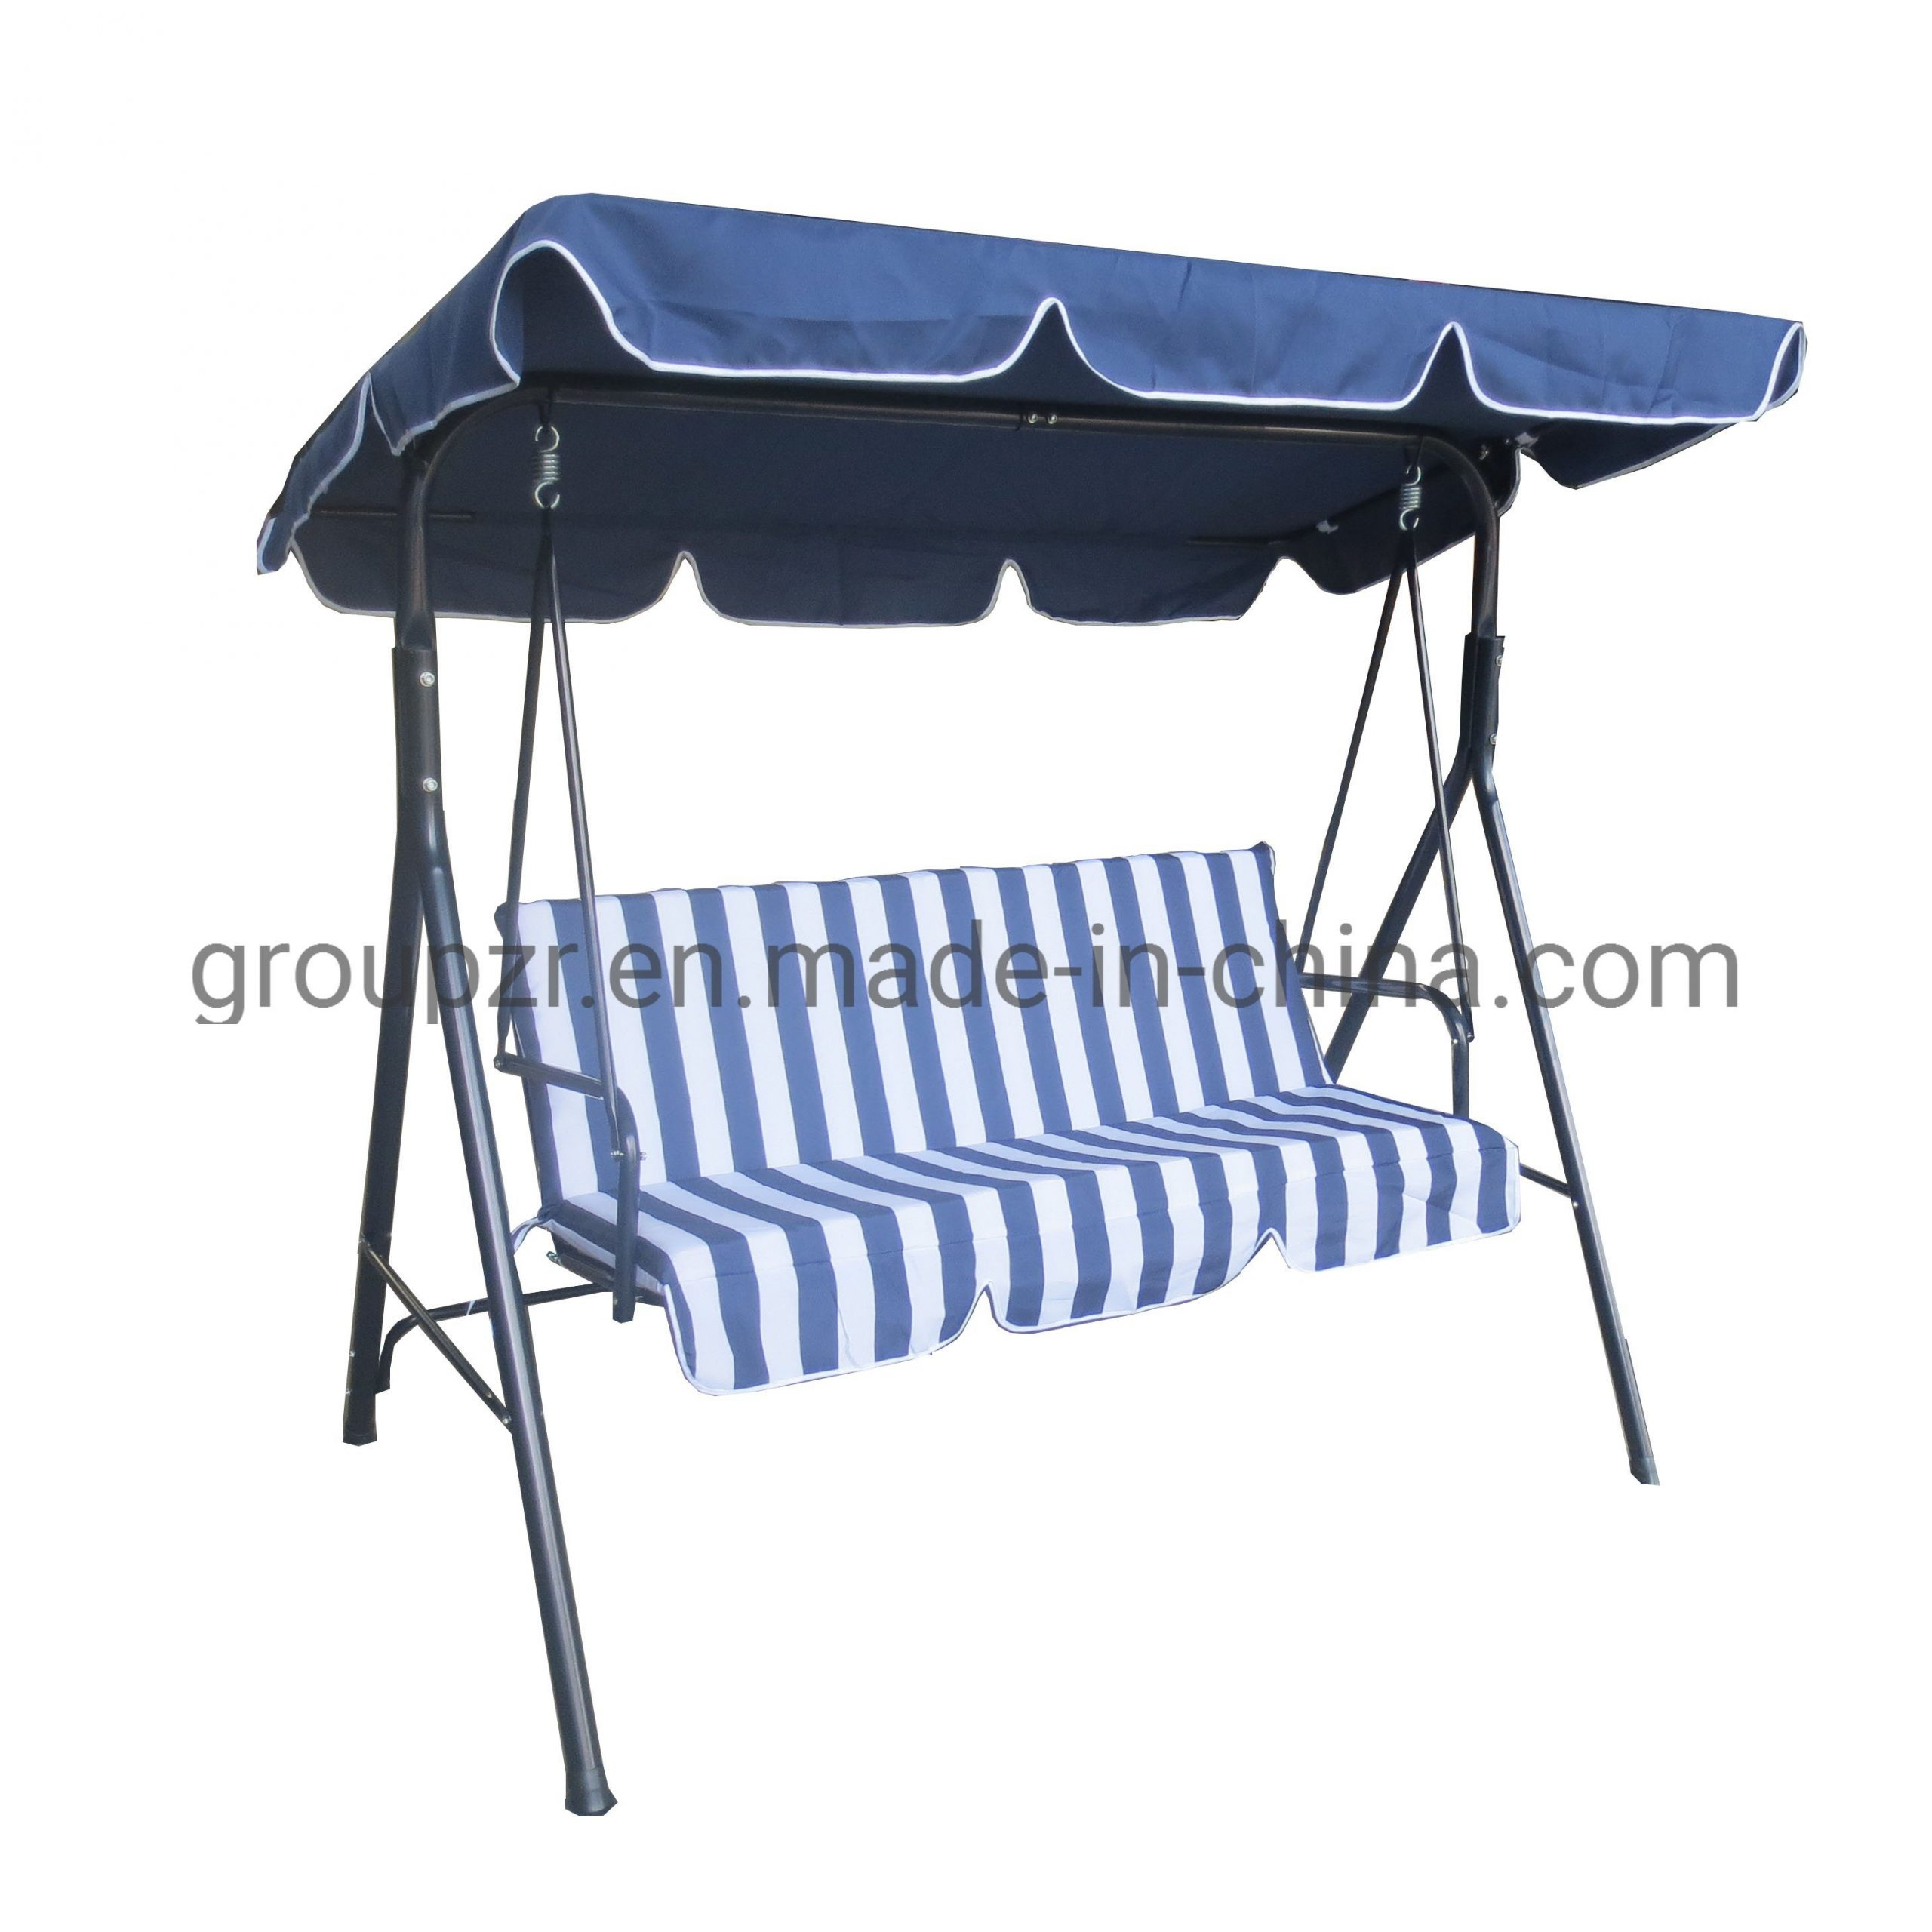 China Top Selling 3 Seats Garden Patio Swing Chair With Regarding Garden Leisure Outdoor Hammock Patio Canopy Rocking Chairs (View 7 of 25)